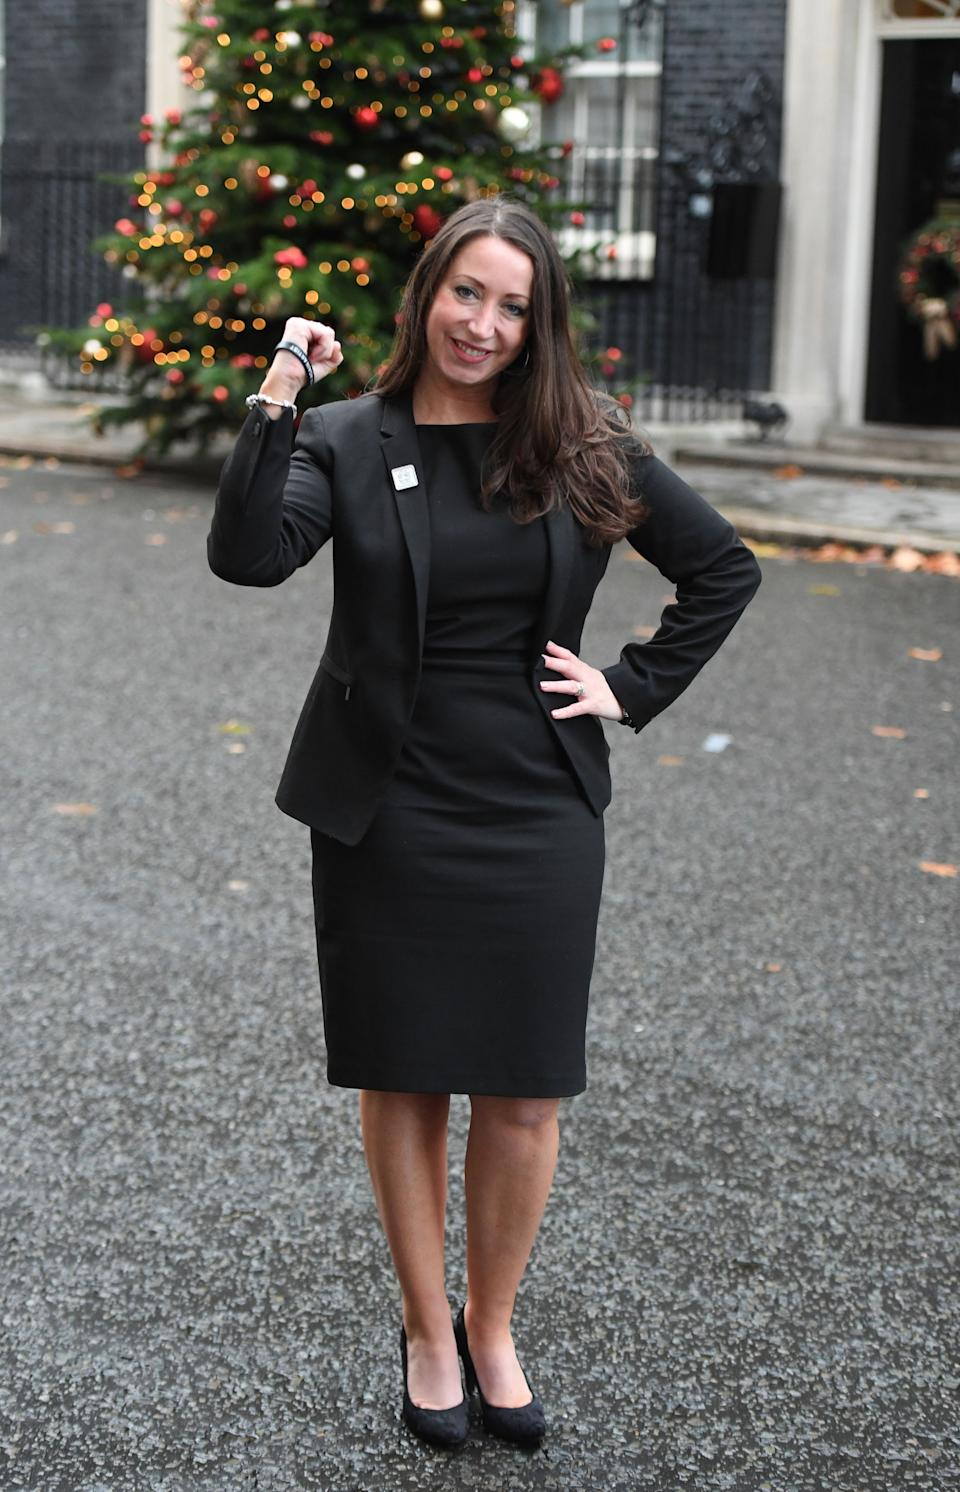 Paula Williamson, the wife of prisoner Charles Bronson, stands in Downing Street, London, after delivering a petition to number 10, in support of her husband being released from prison.